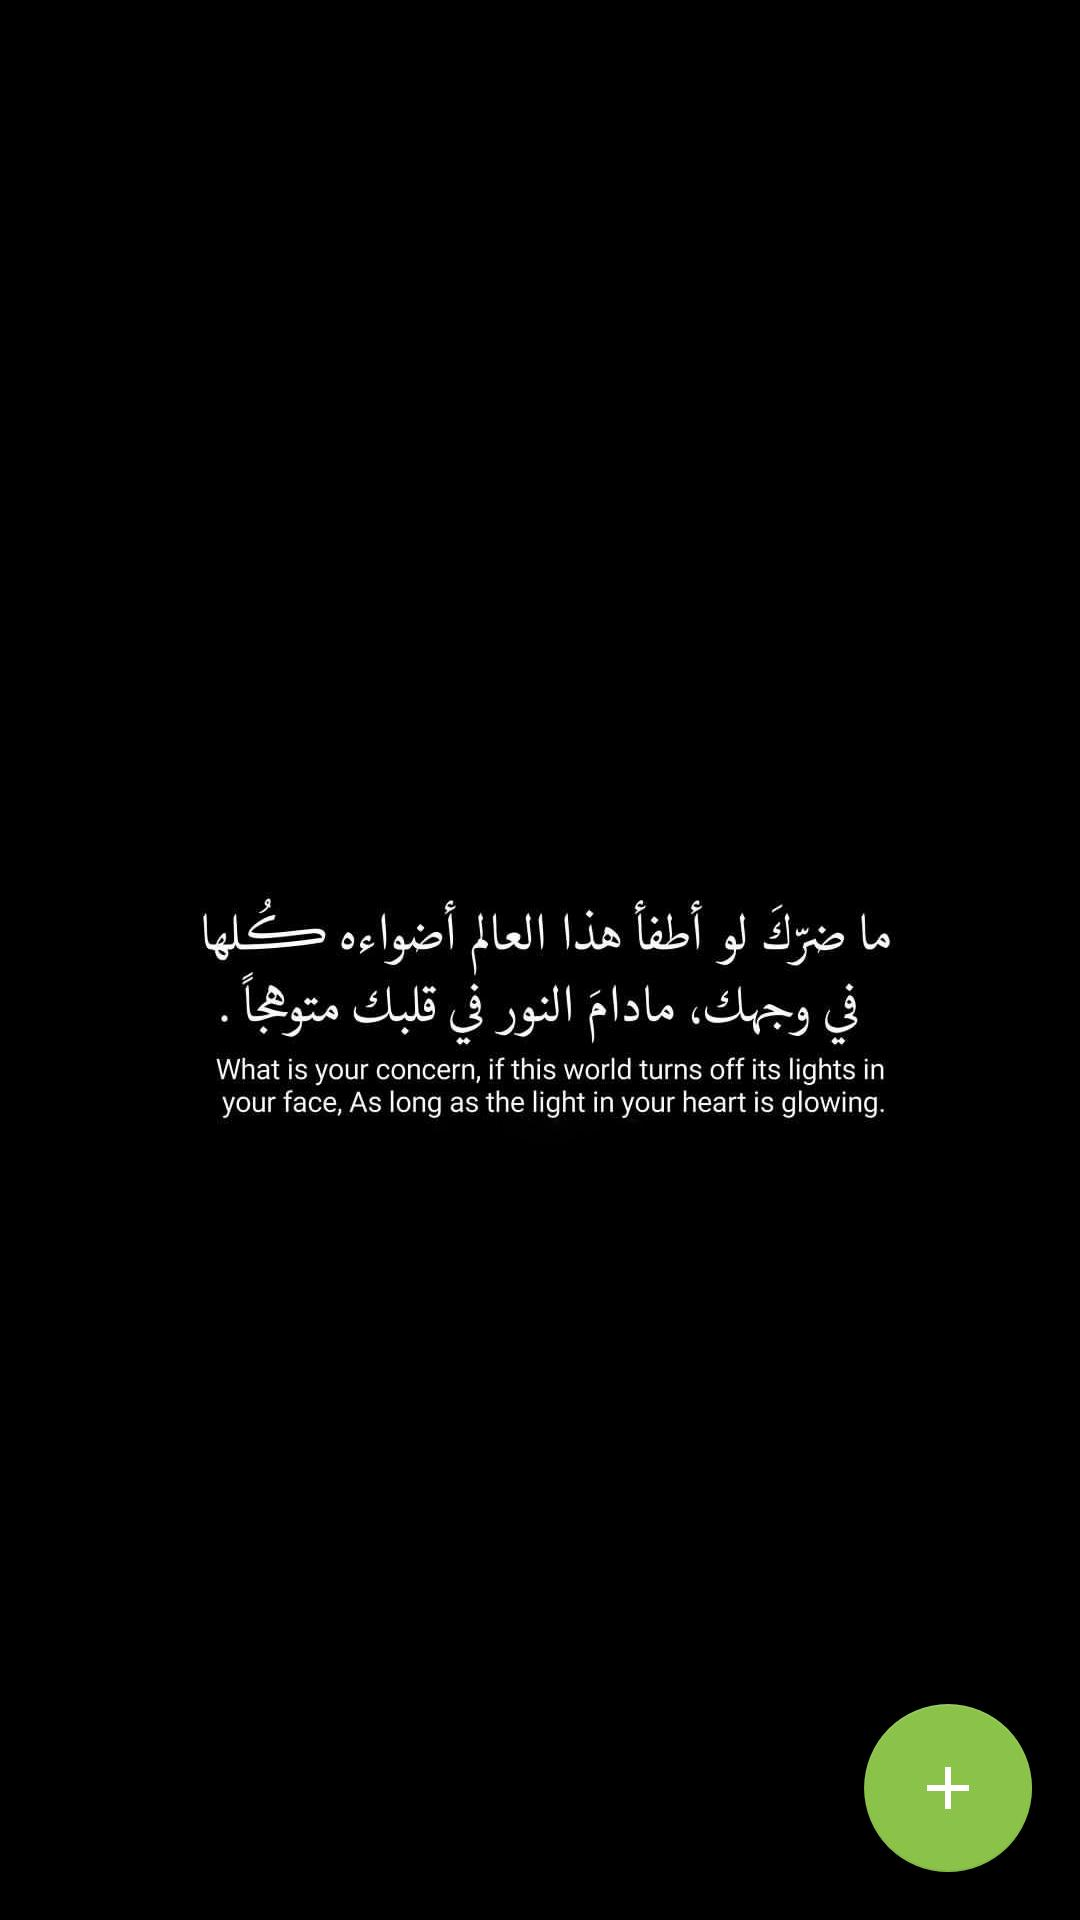 Arabic Quotes for Android - APK Download